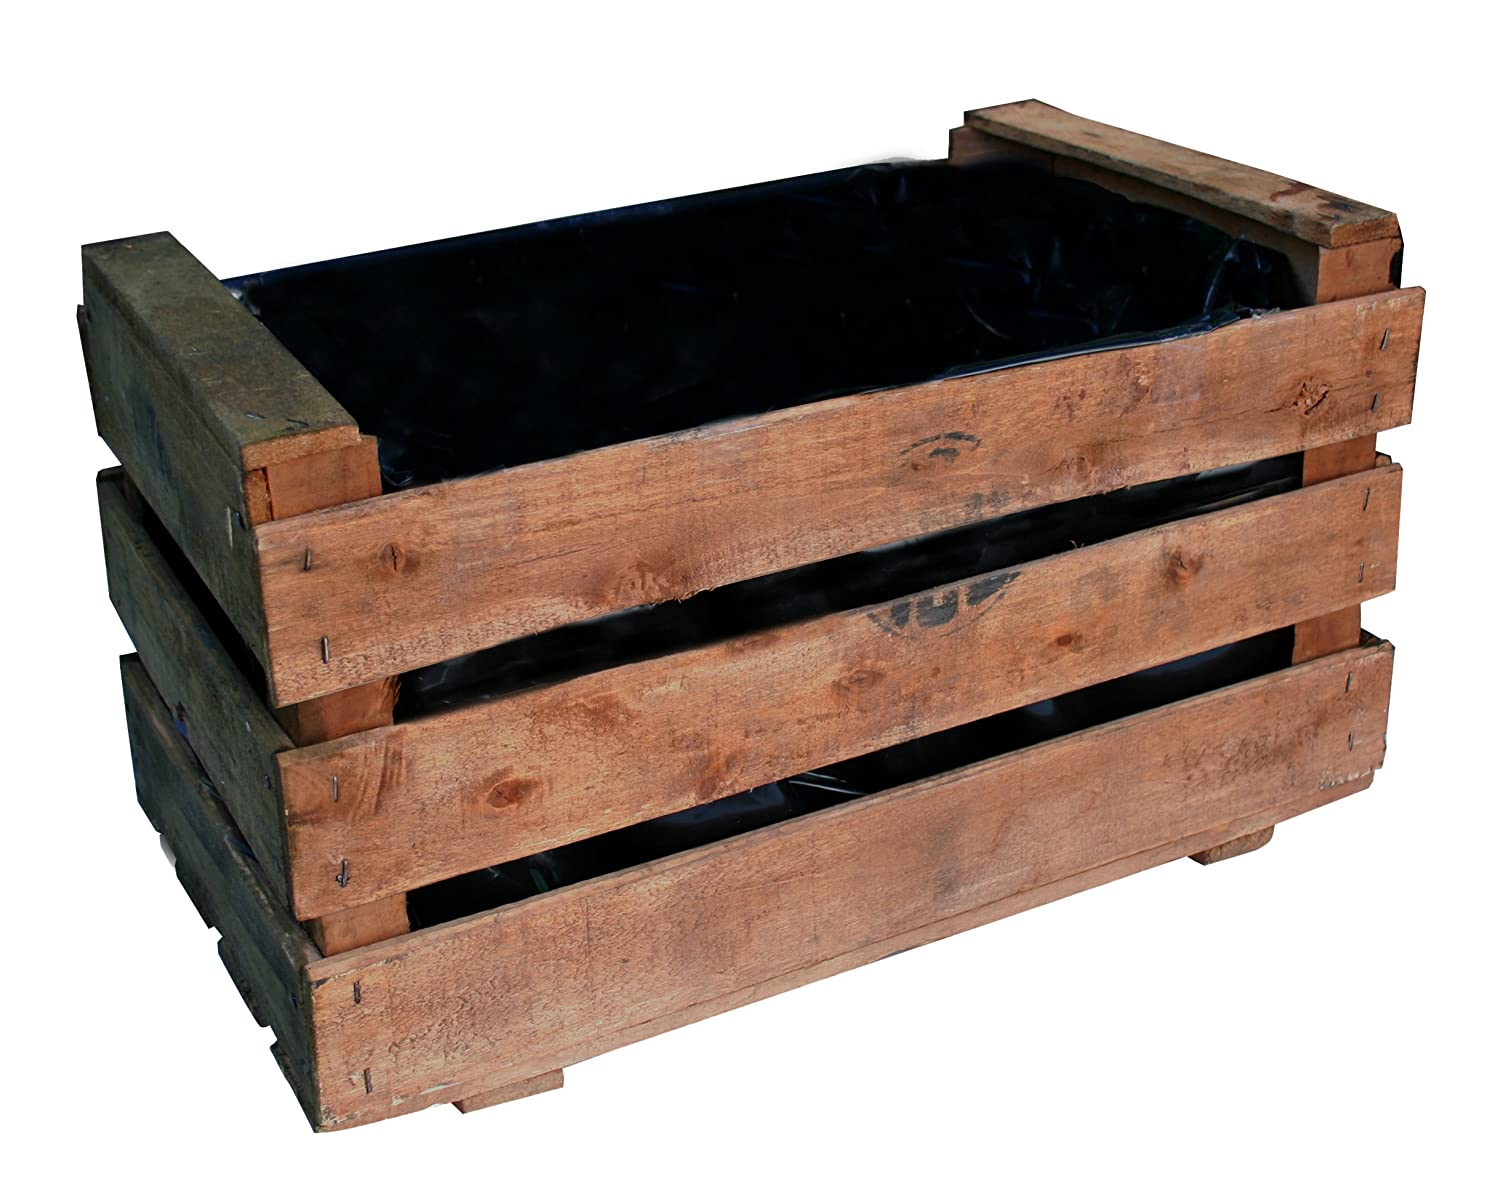 Caja de fruta antigua, jardinera de madera 50x30x27 cm VINTAGEBOX, color natural: Amazon.es: Jardín